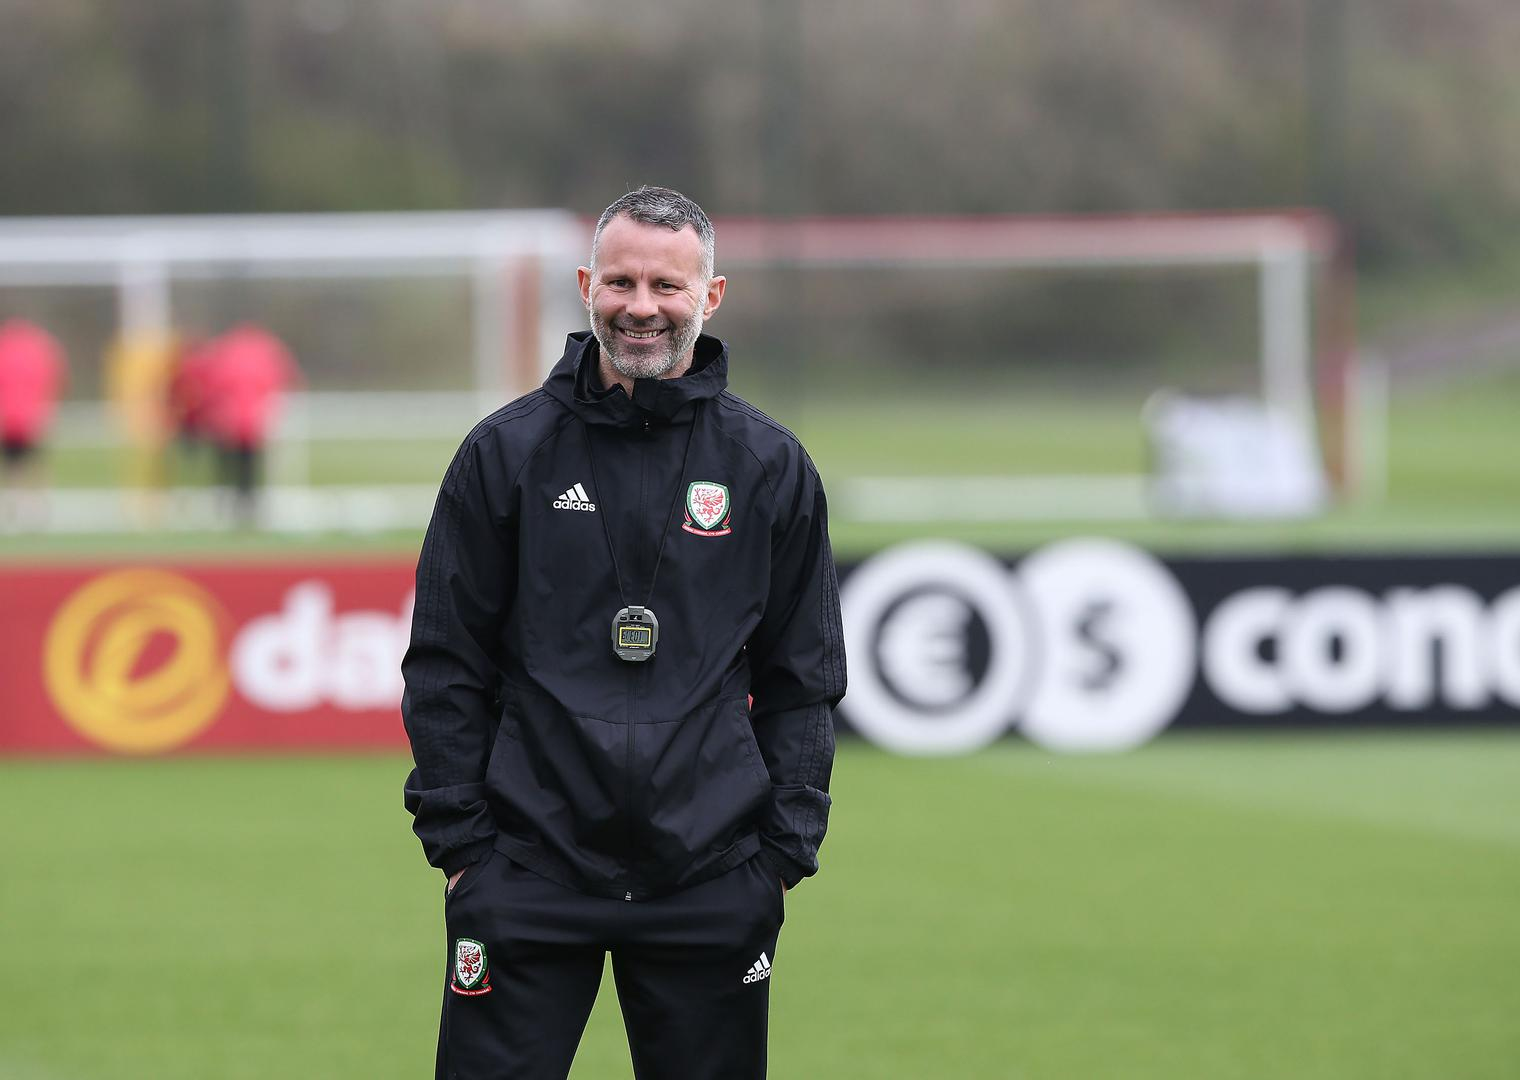 Wales manager Ryan Giggs watching a training session.